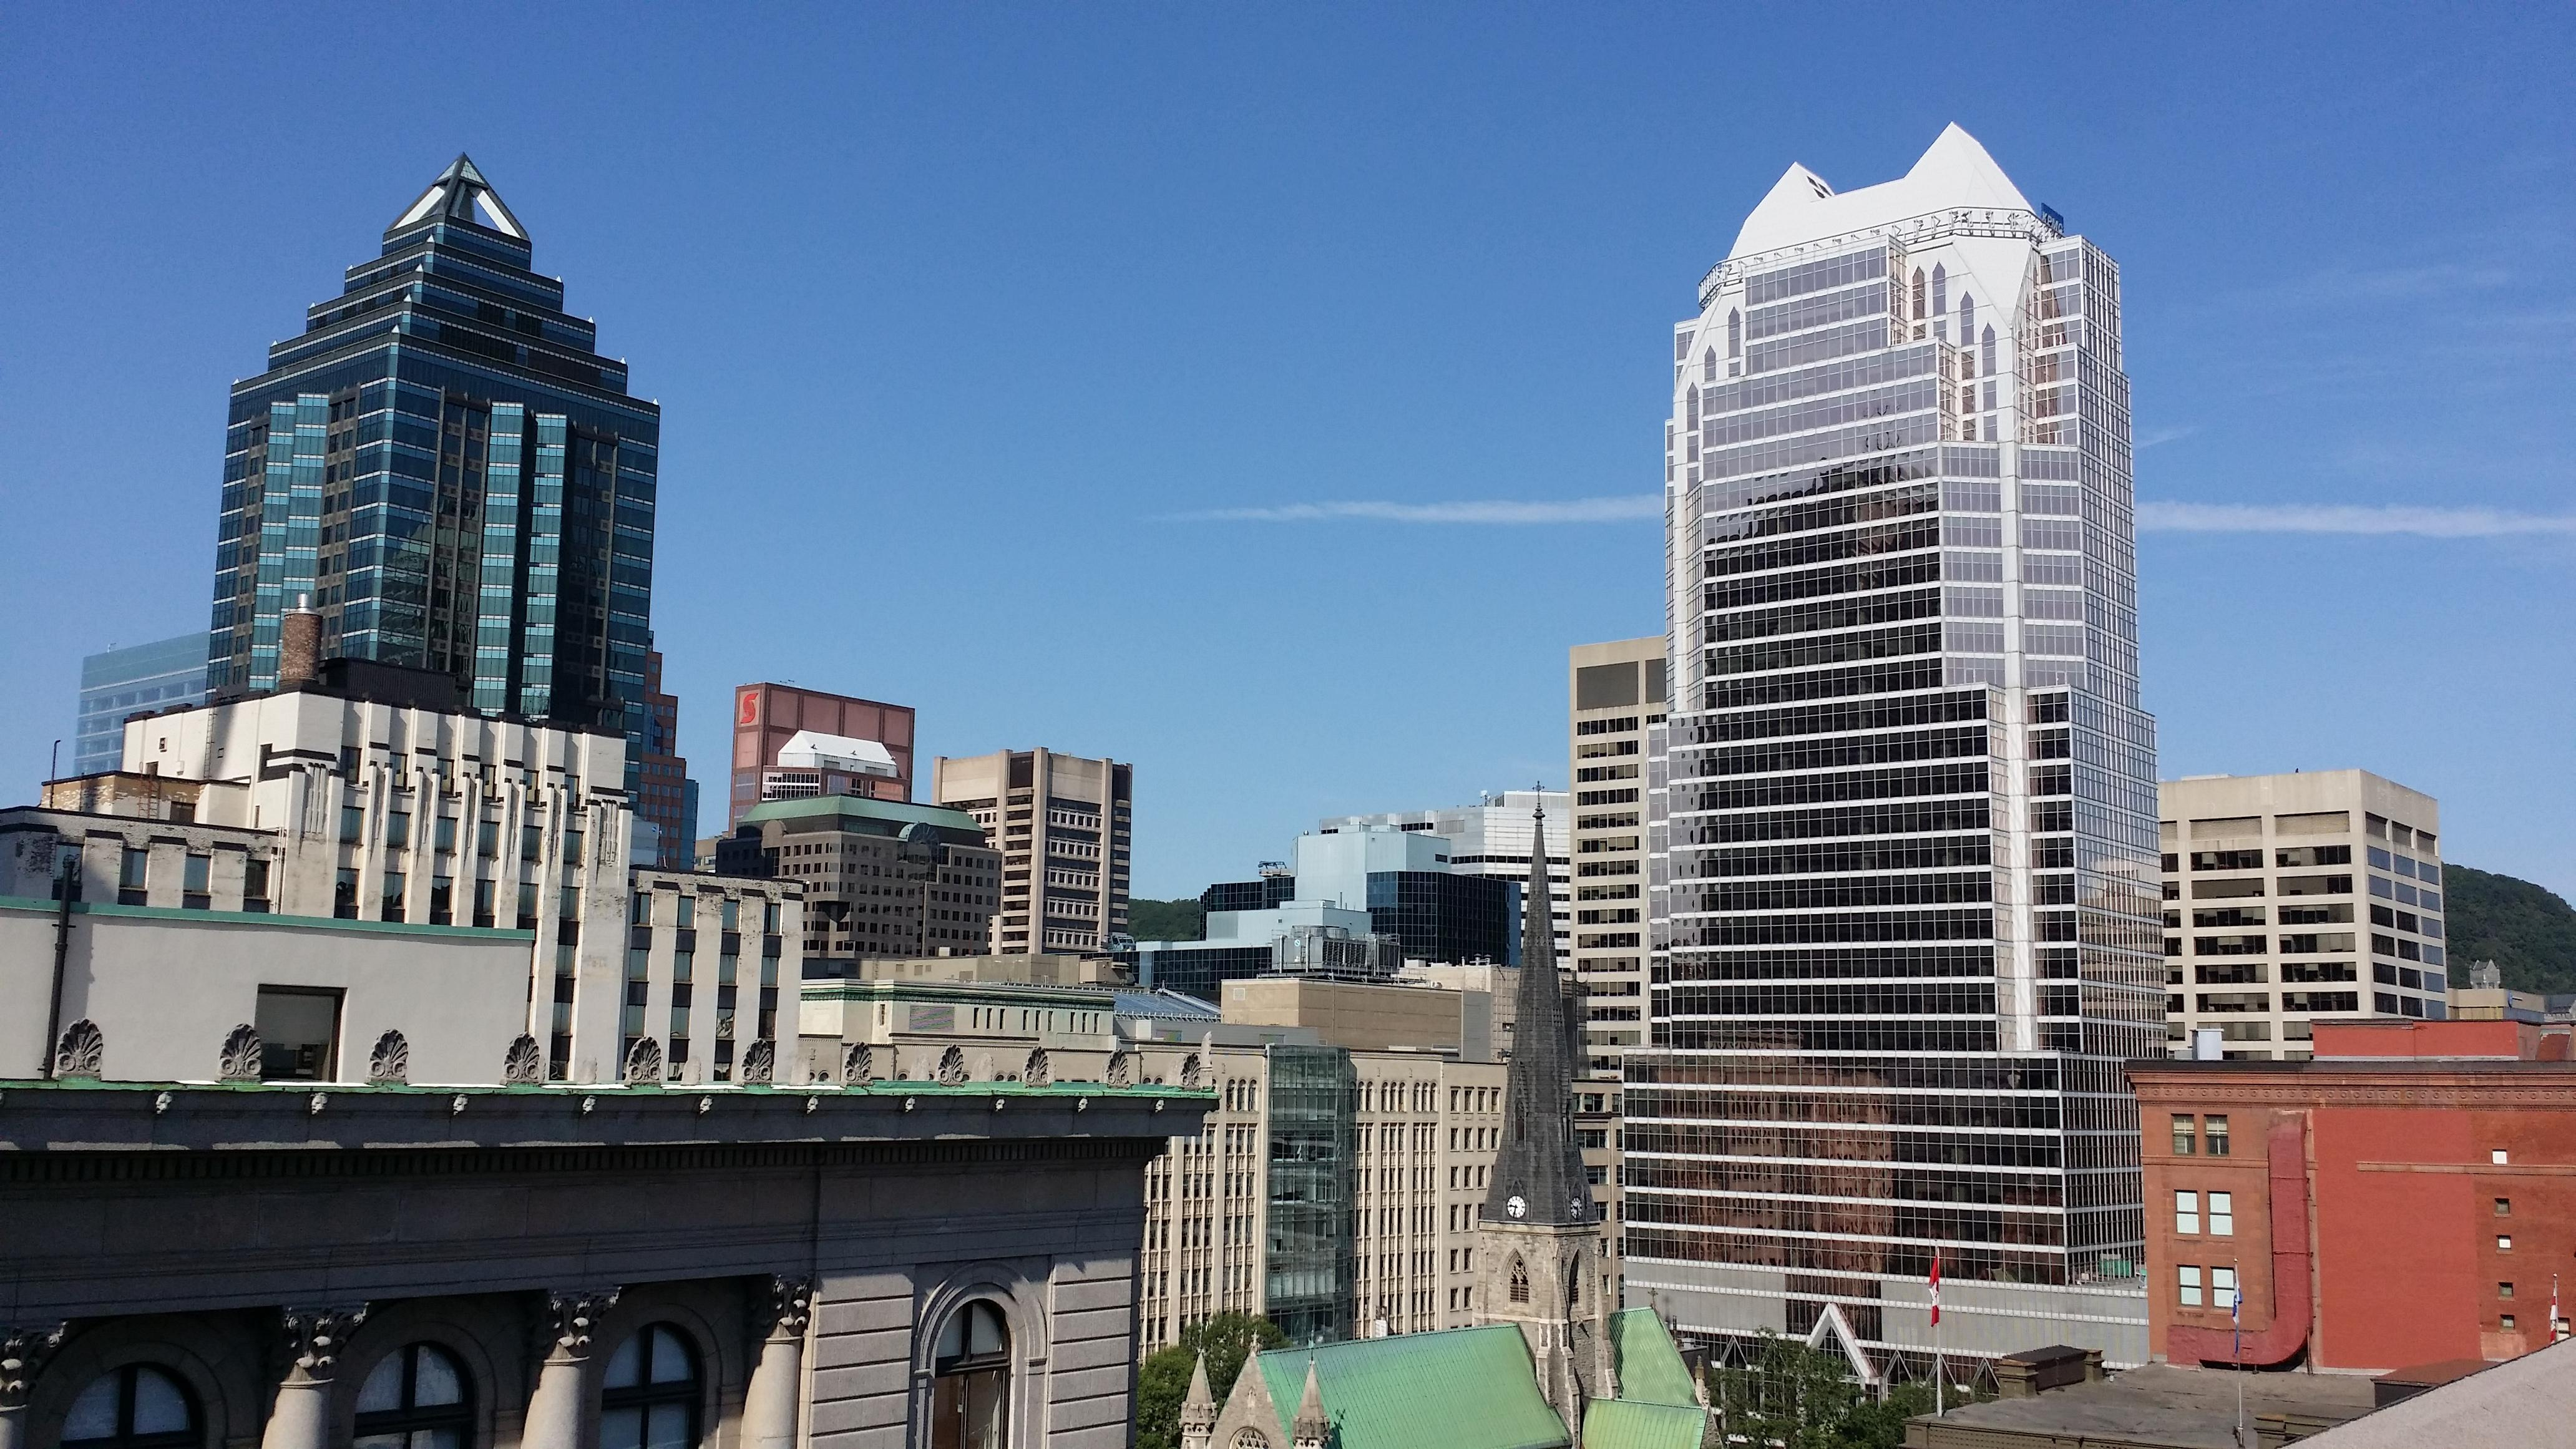 A view from the roof.